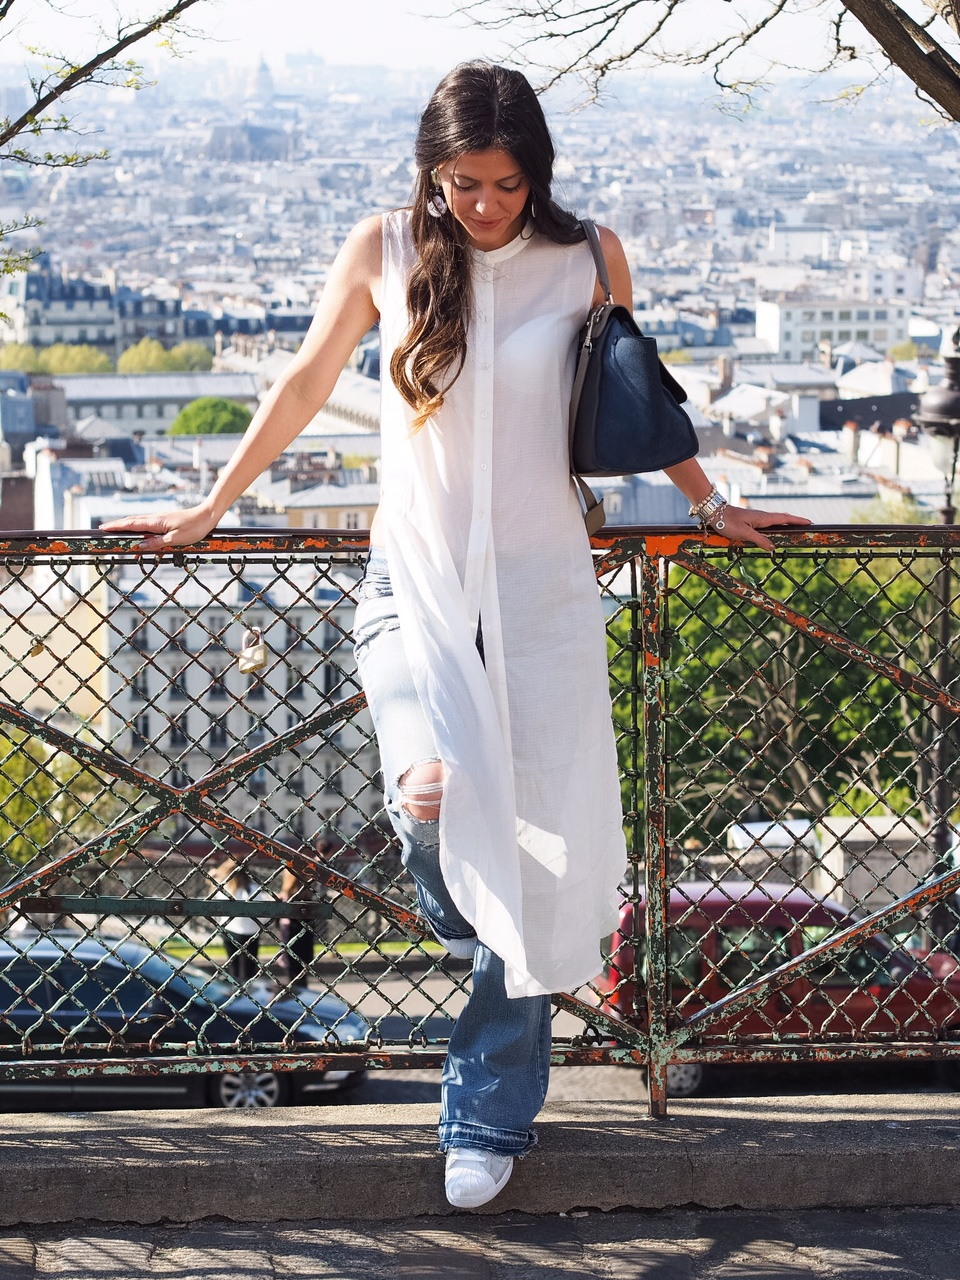 baume&mercier lebanon fashion blogger beauty paris shoot